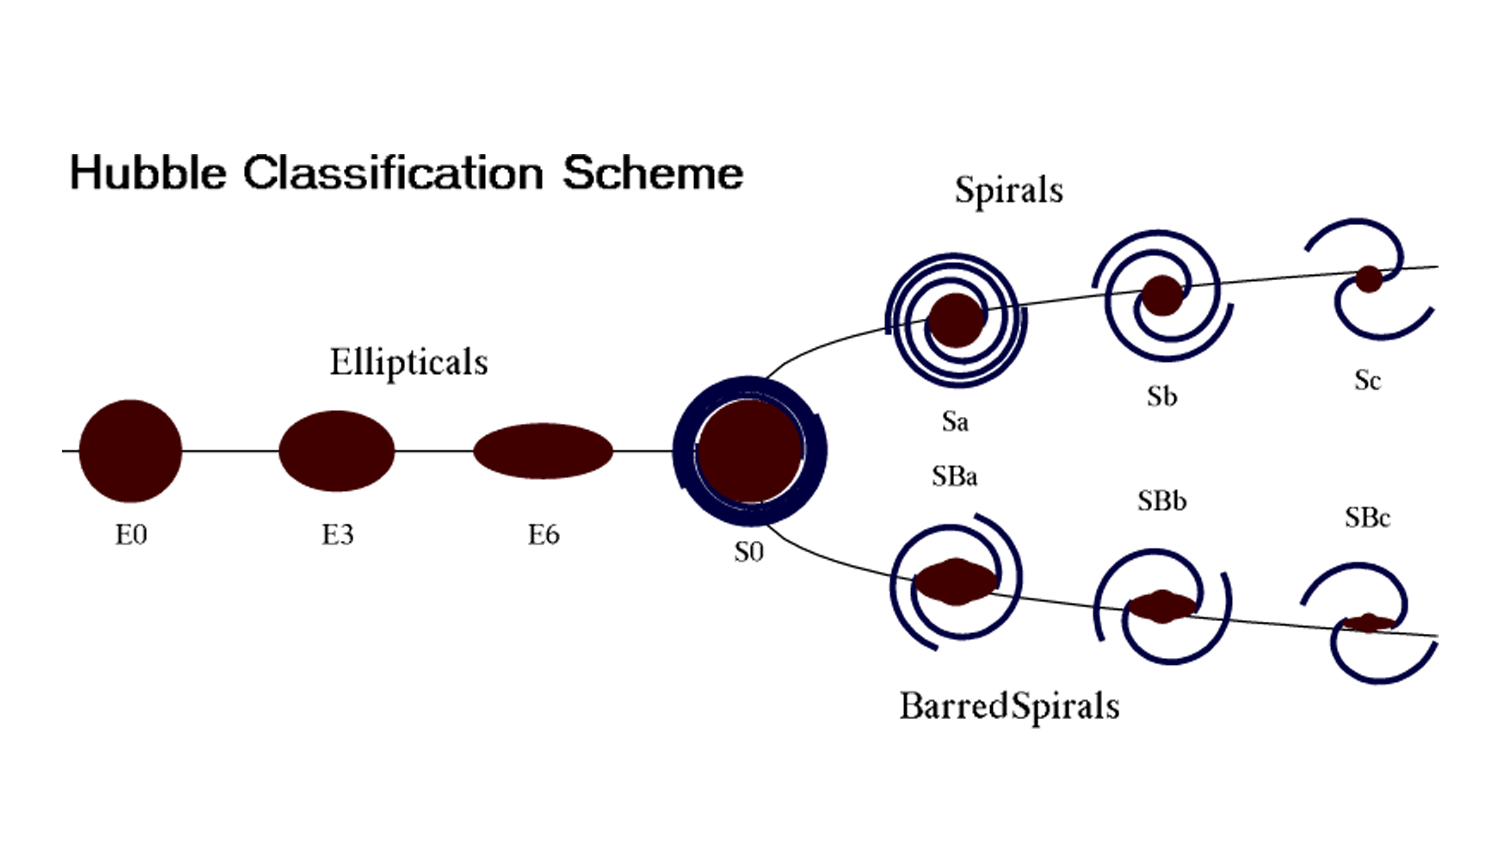 Diagram of the galaxy classification system devised by Edwin Hubble